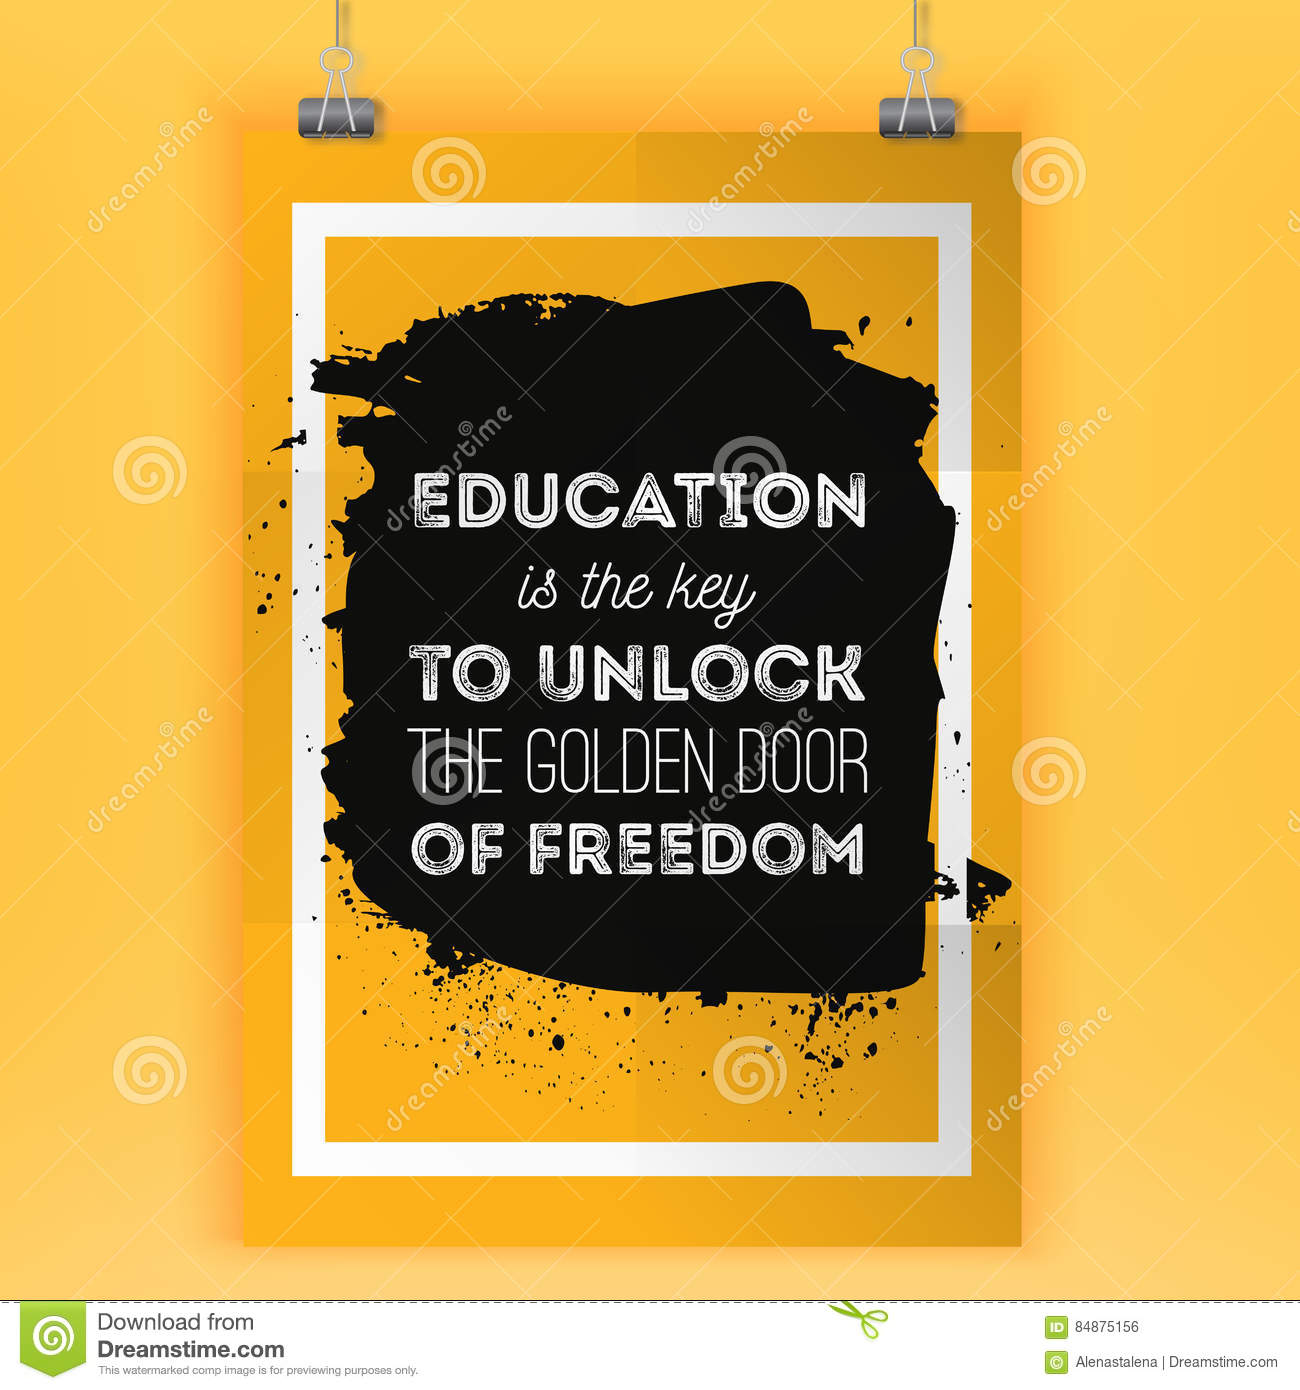 Education is the key to unlock the golden door of freedom motivational quote vector poster